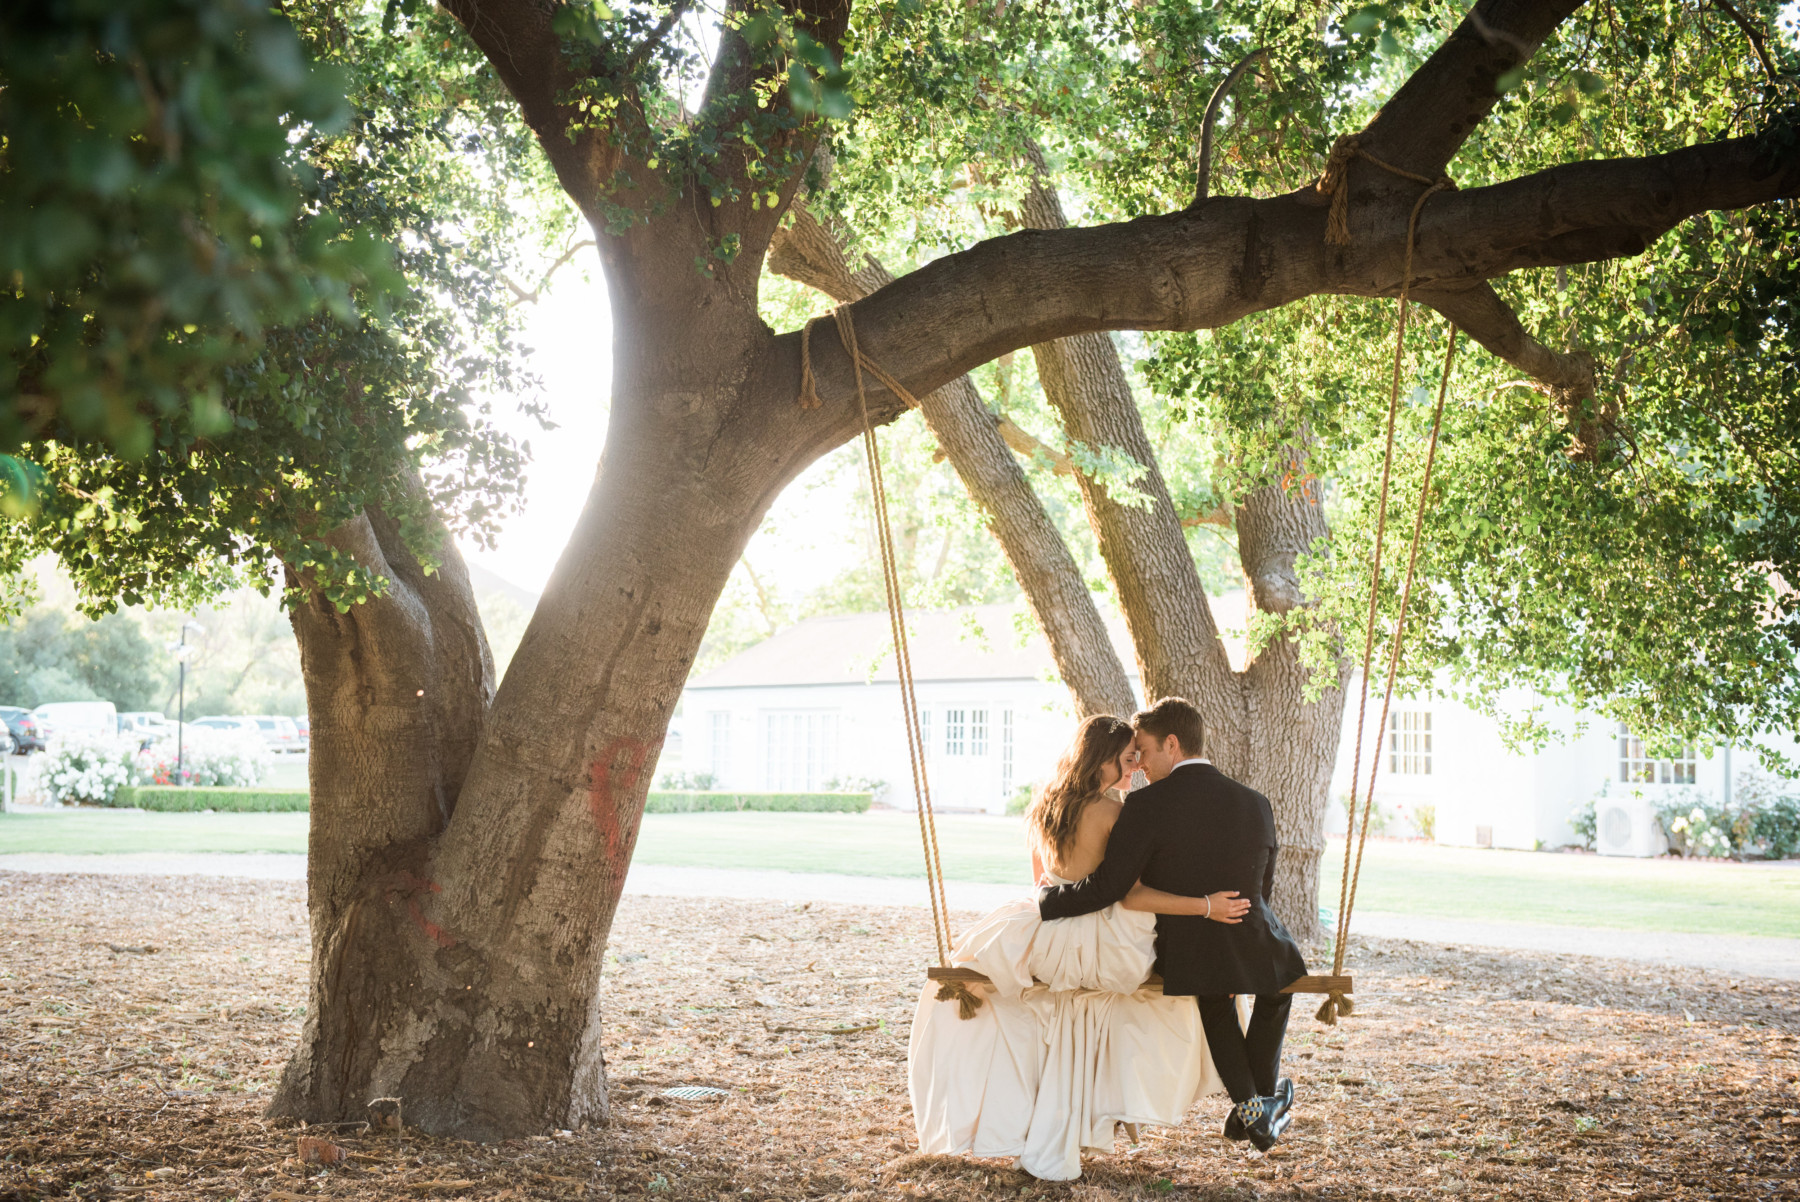 View More: http://cameronleungphoto.pass.us/meredithandclay